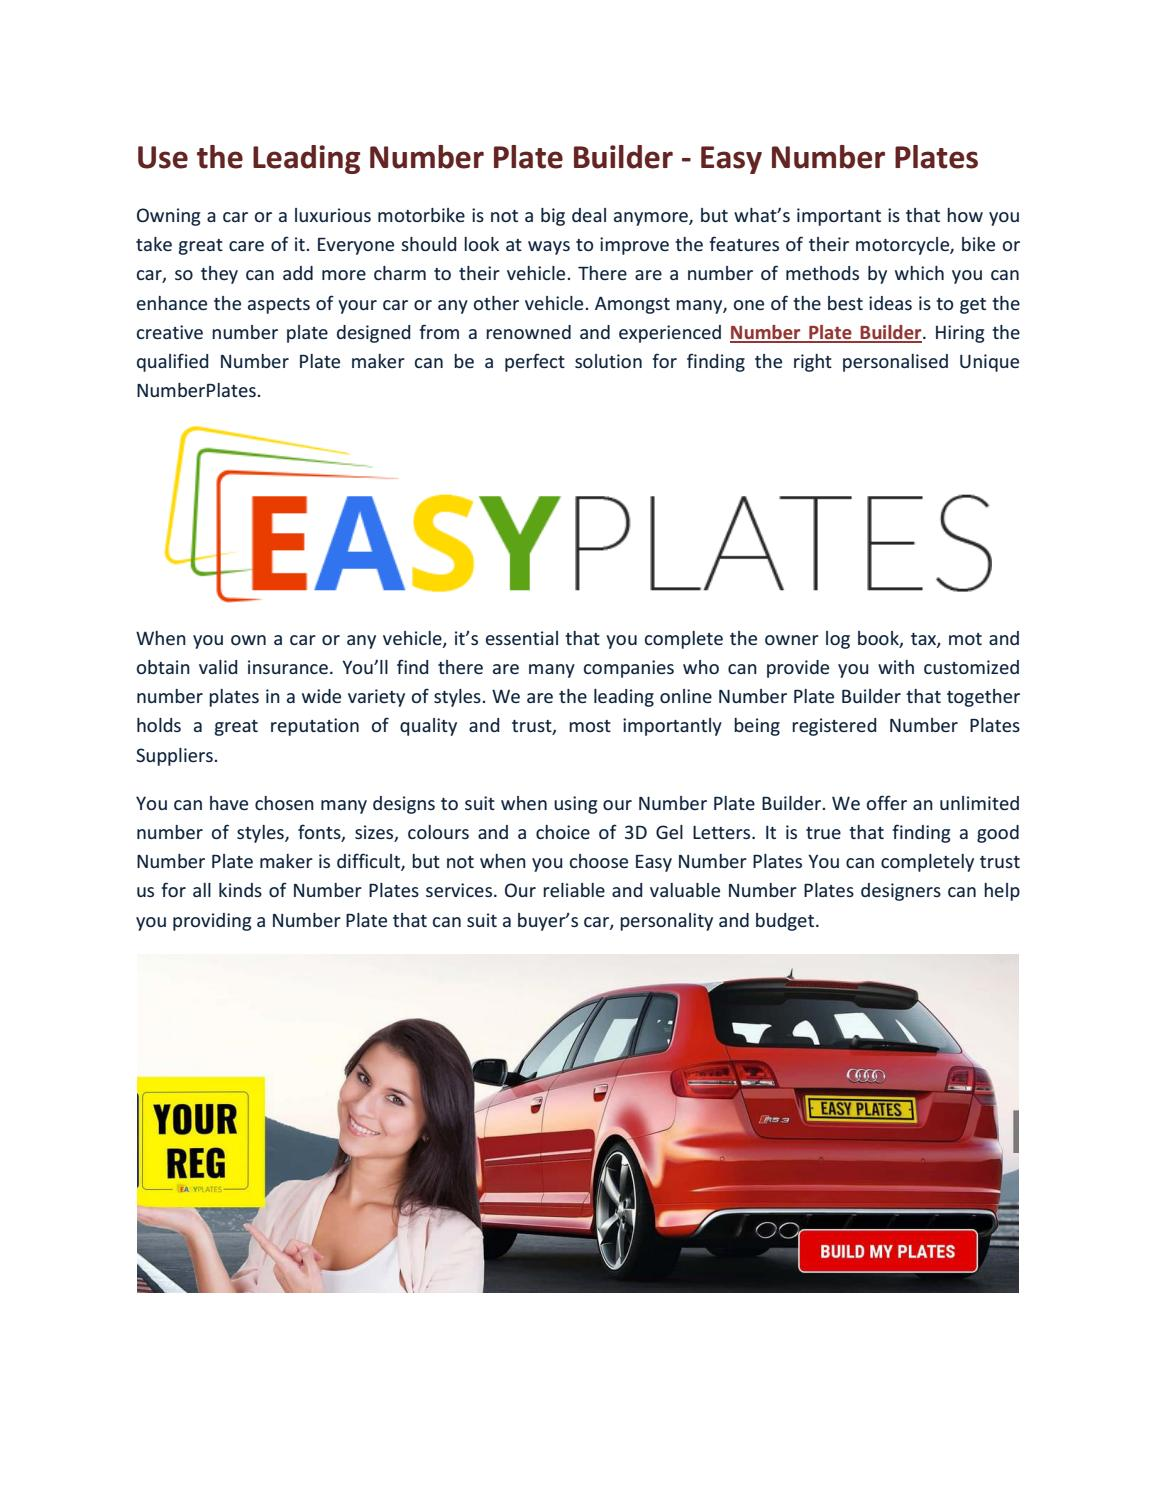 Number Plate Suppliers >> Use The Leading Number Plate Builder Easy Number Plates By